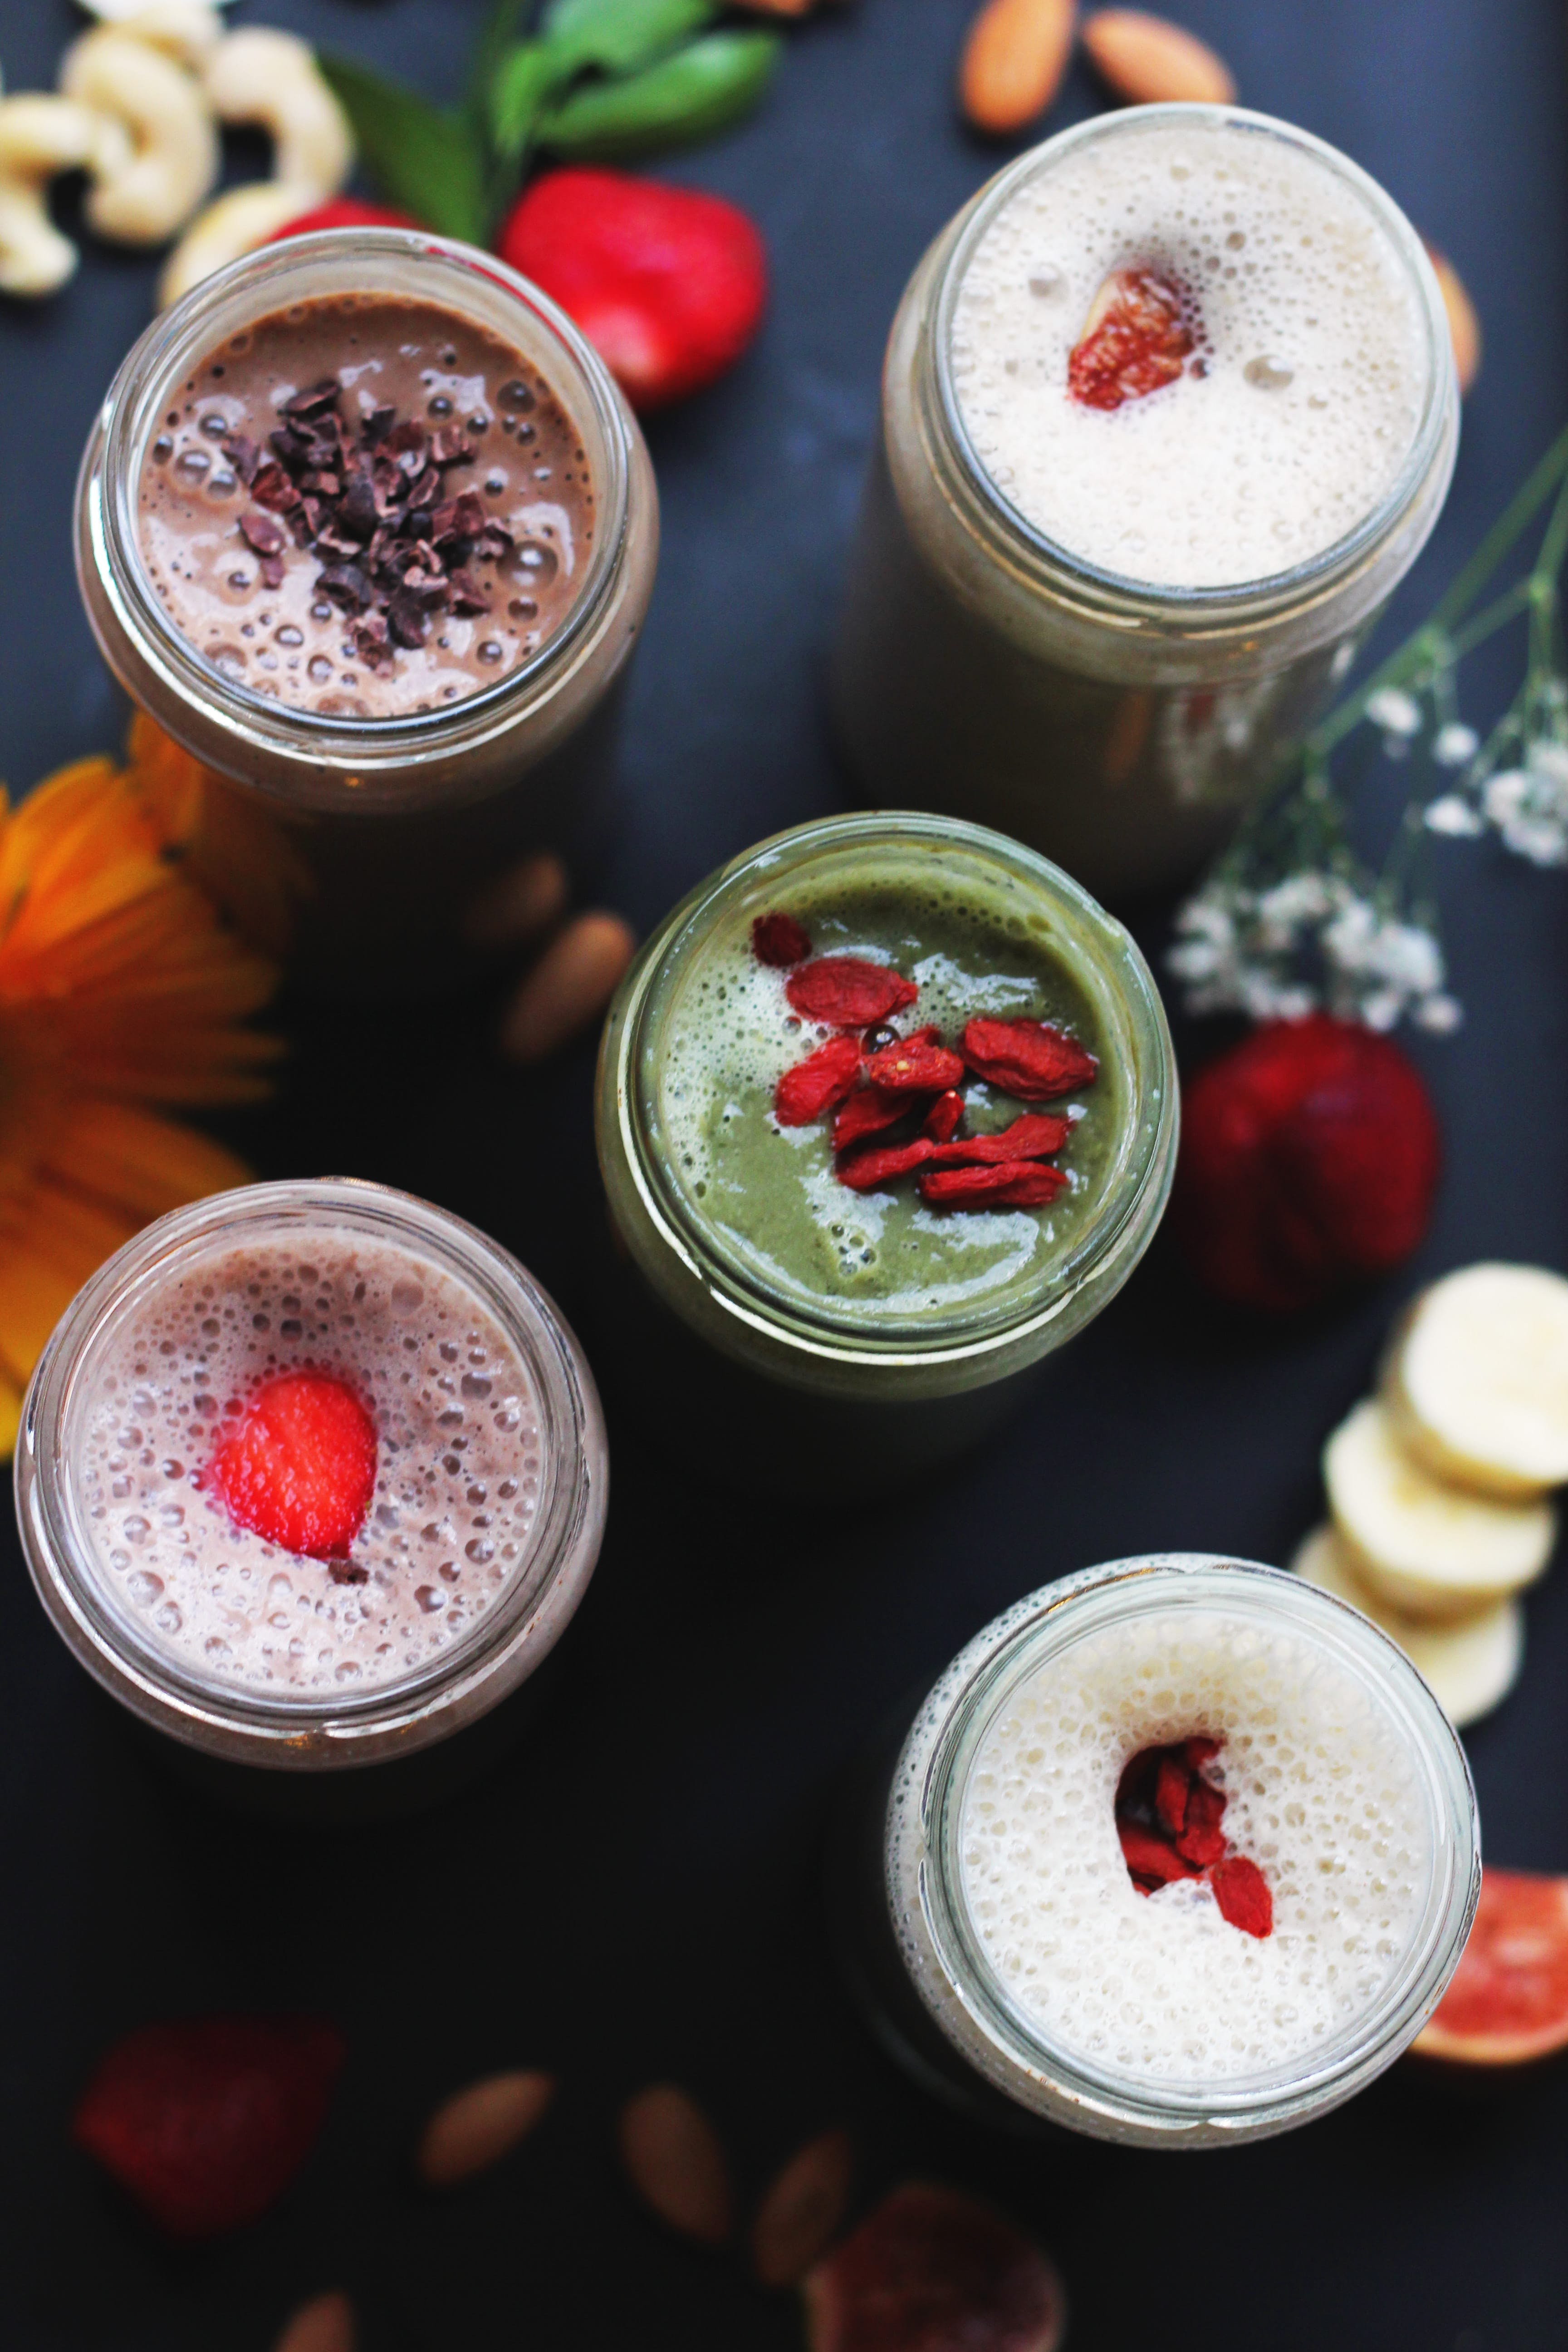 Five Assorted-flavor Milkshakes in Glass Jars